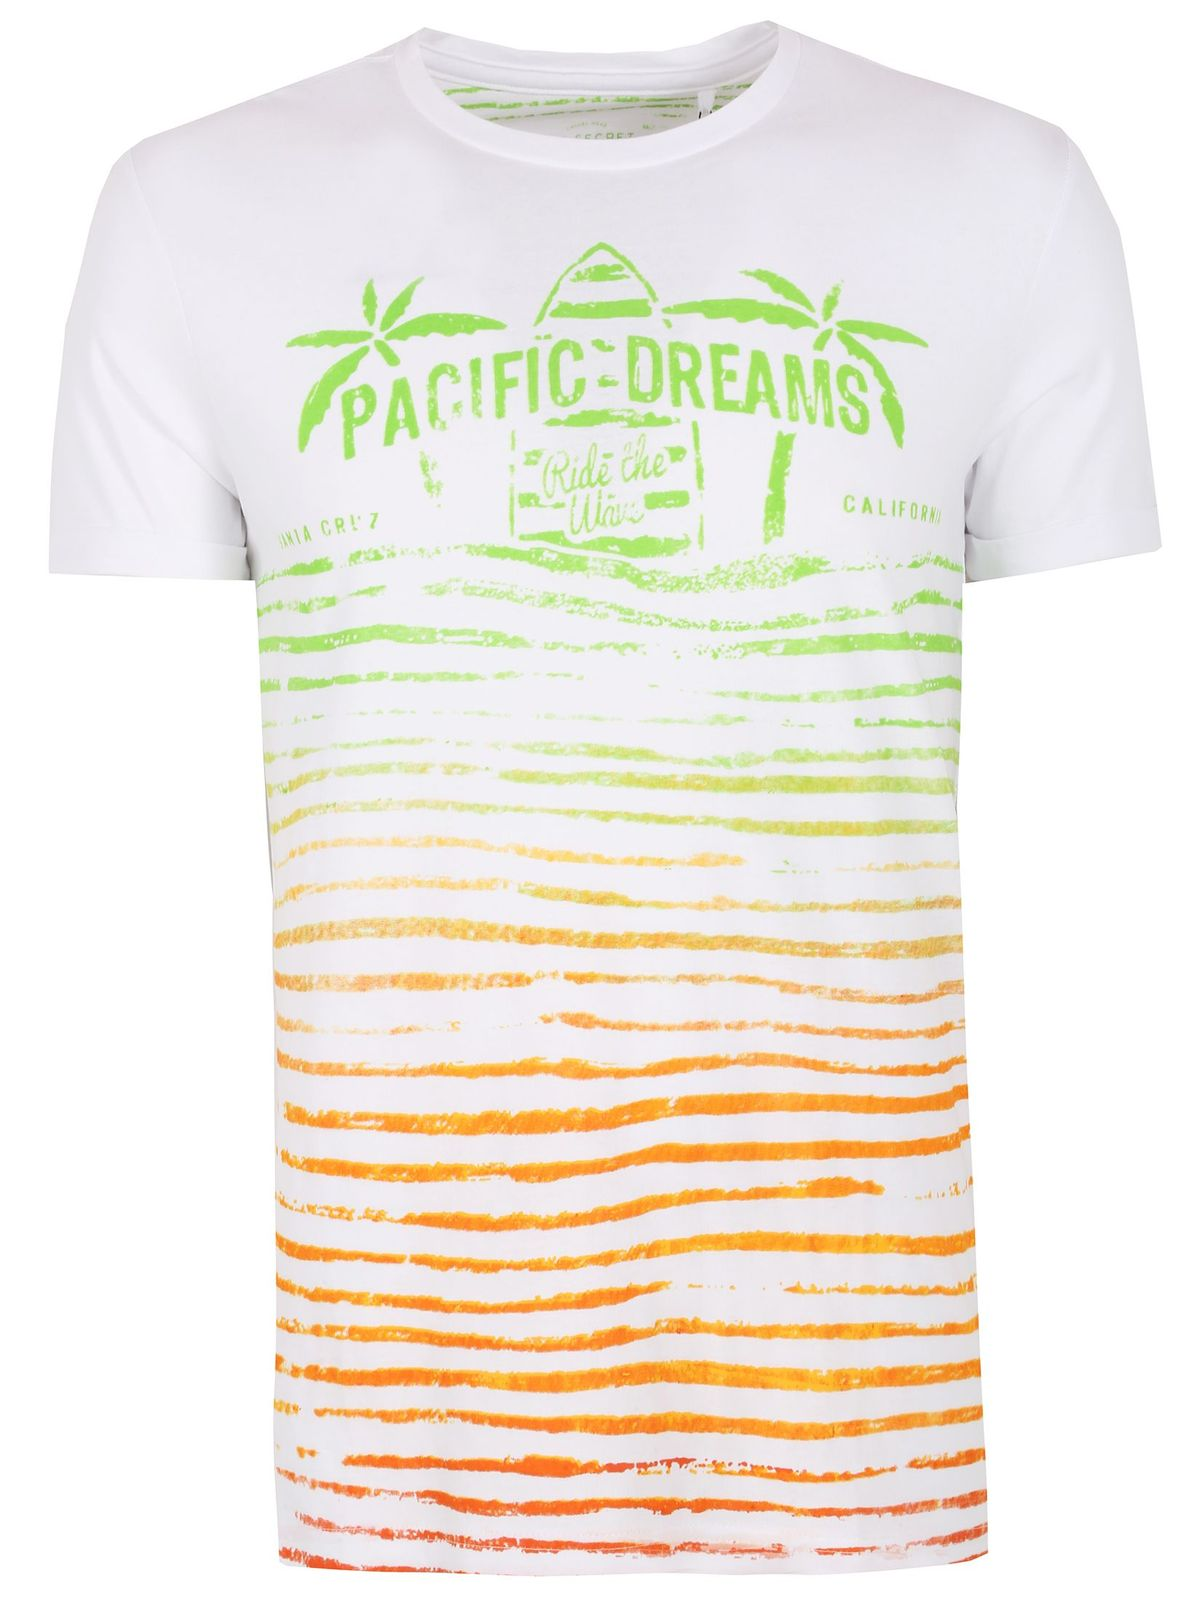 ΛΕΥΚΟ T-SHIRT ME TROPICAL PRINT - 332937